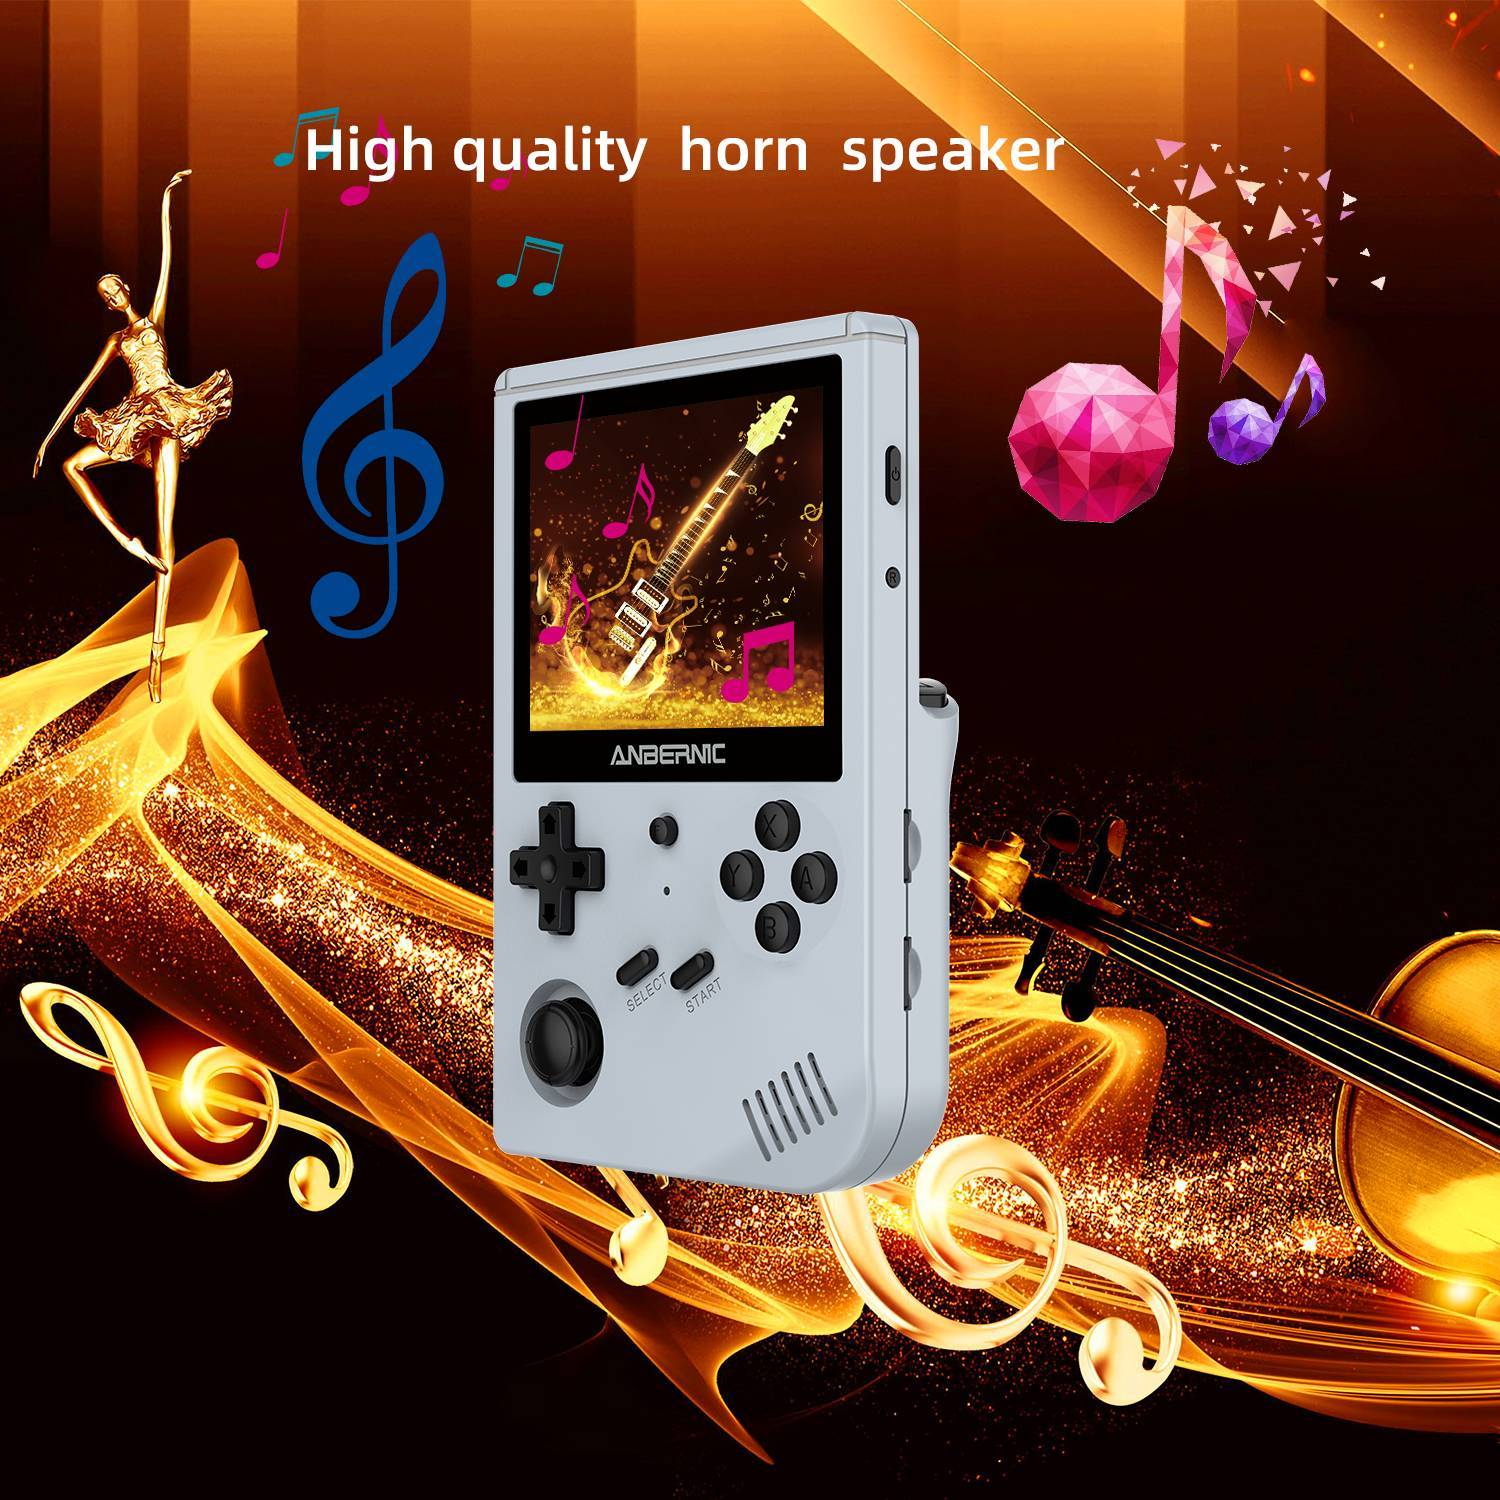 ANBERNIC Grey RG351V Retro Gaming Handheld - Showing High-Quality Speakers